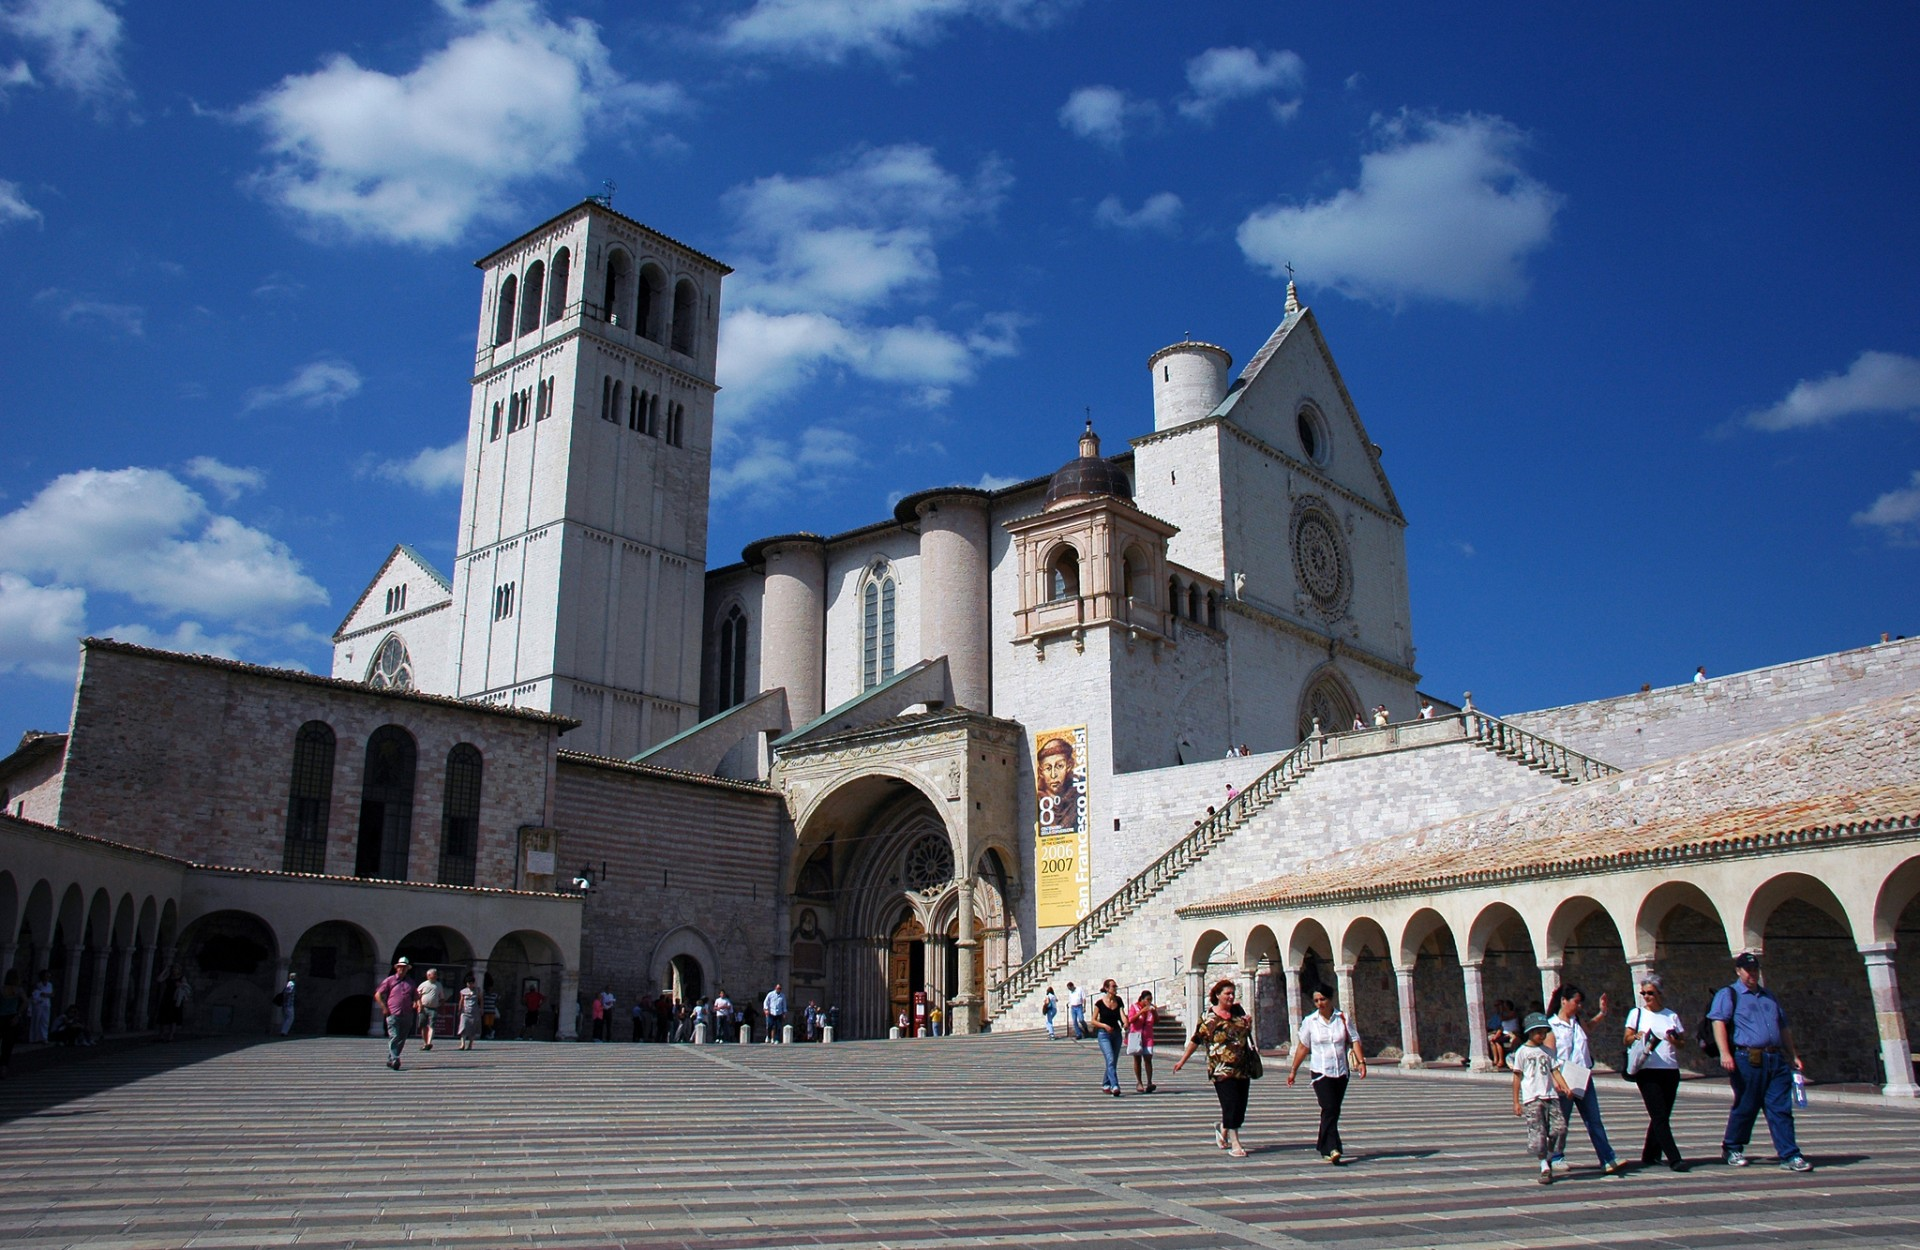 St. Francesco's Way: from Citta' di Castello to Assisi